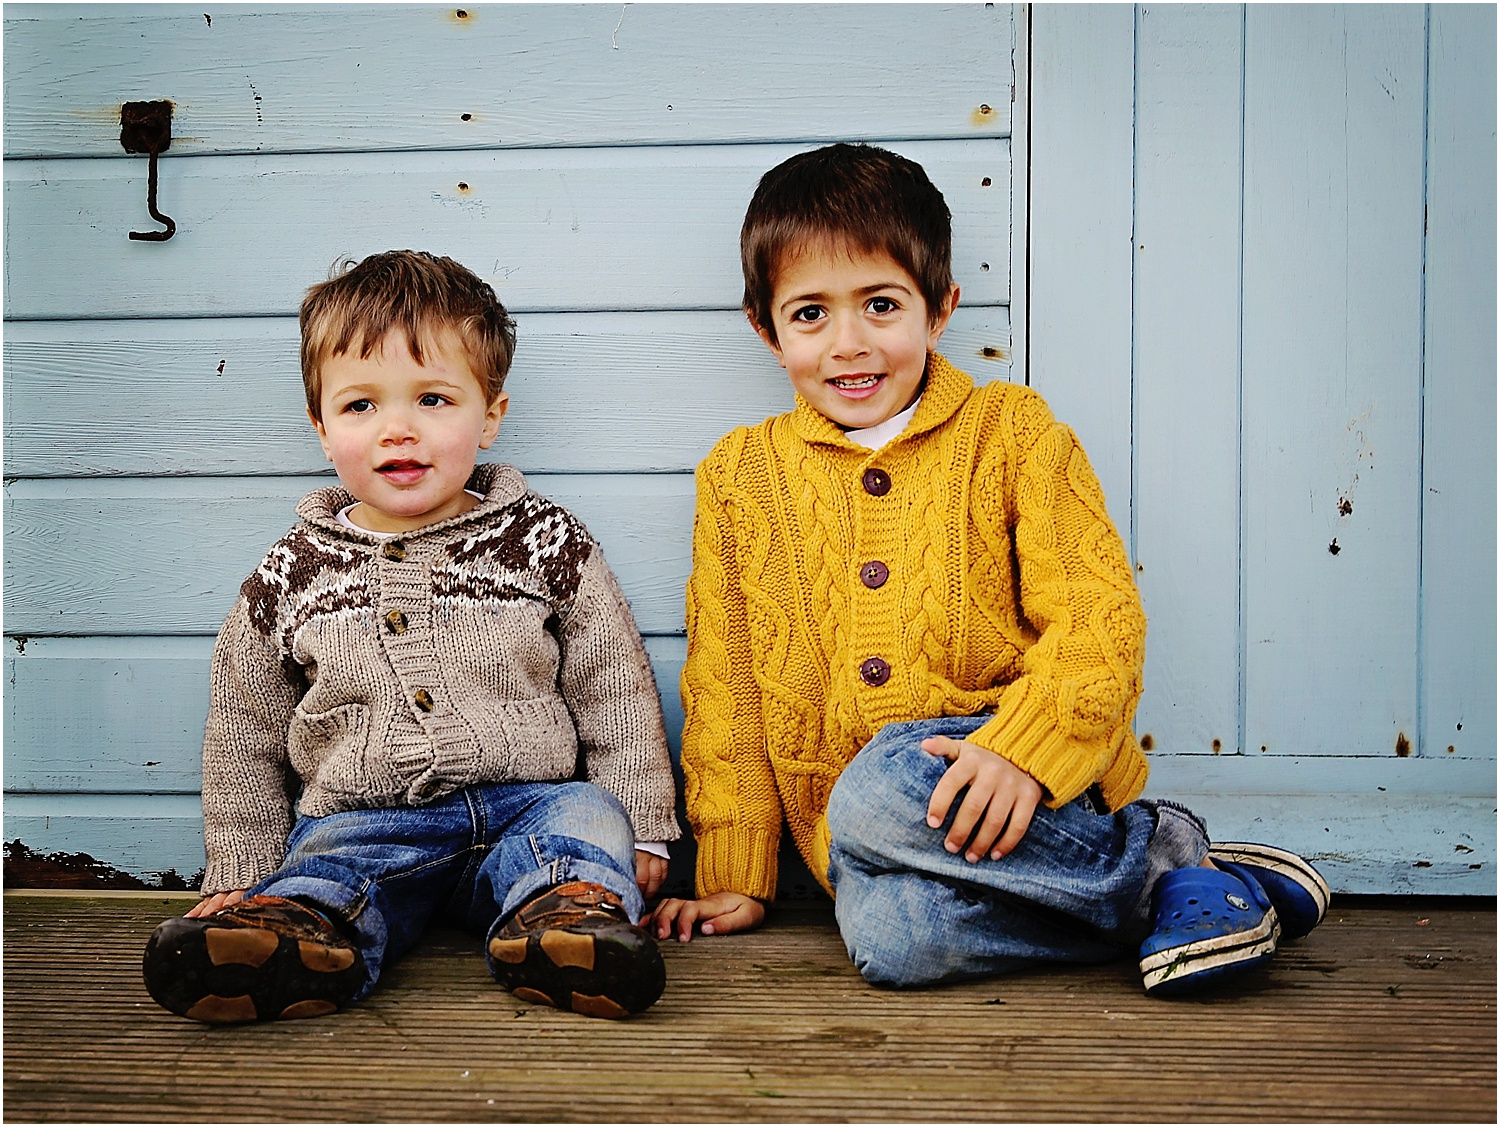 Whitstable beach photography family child boys brothers beach hut